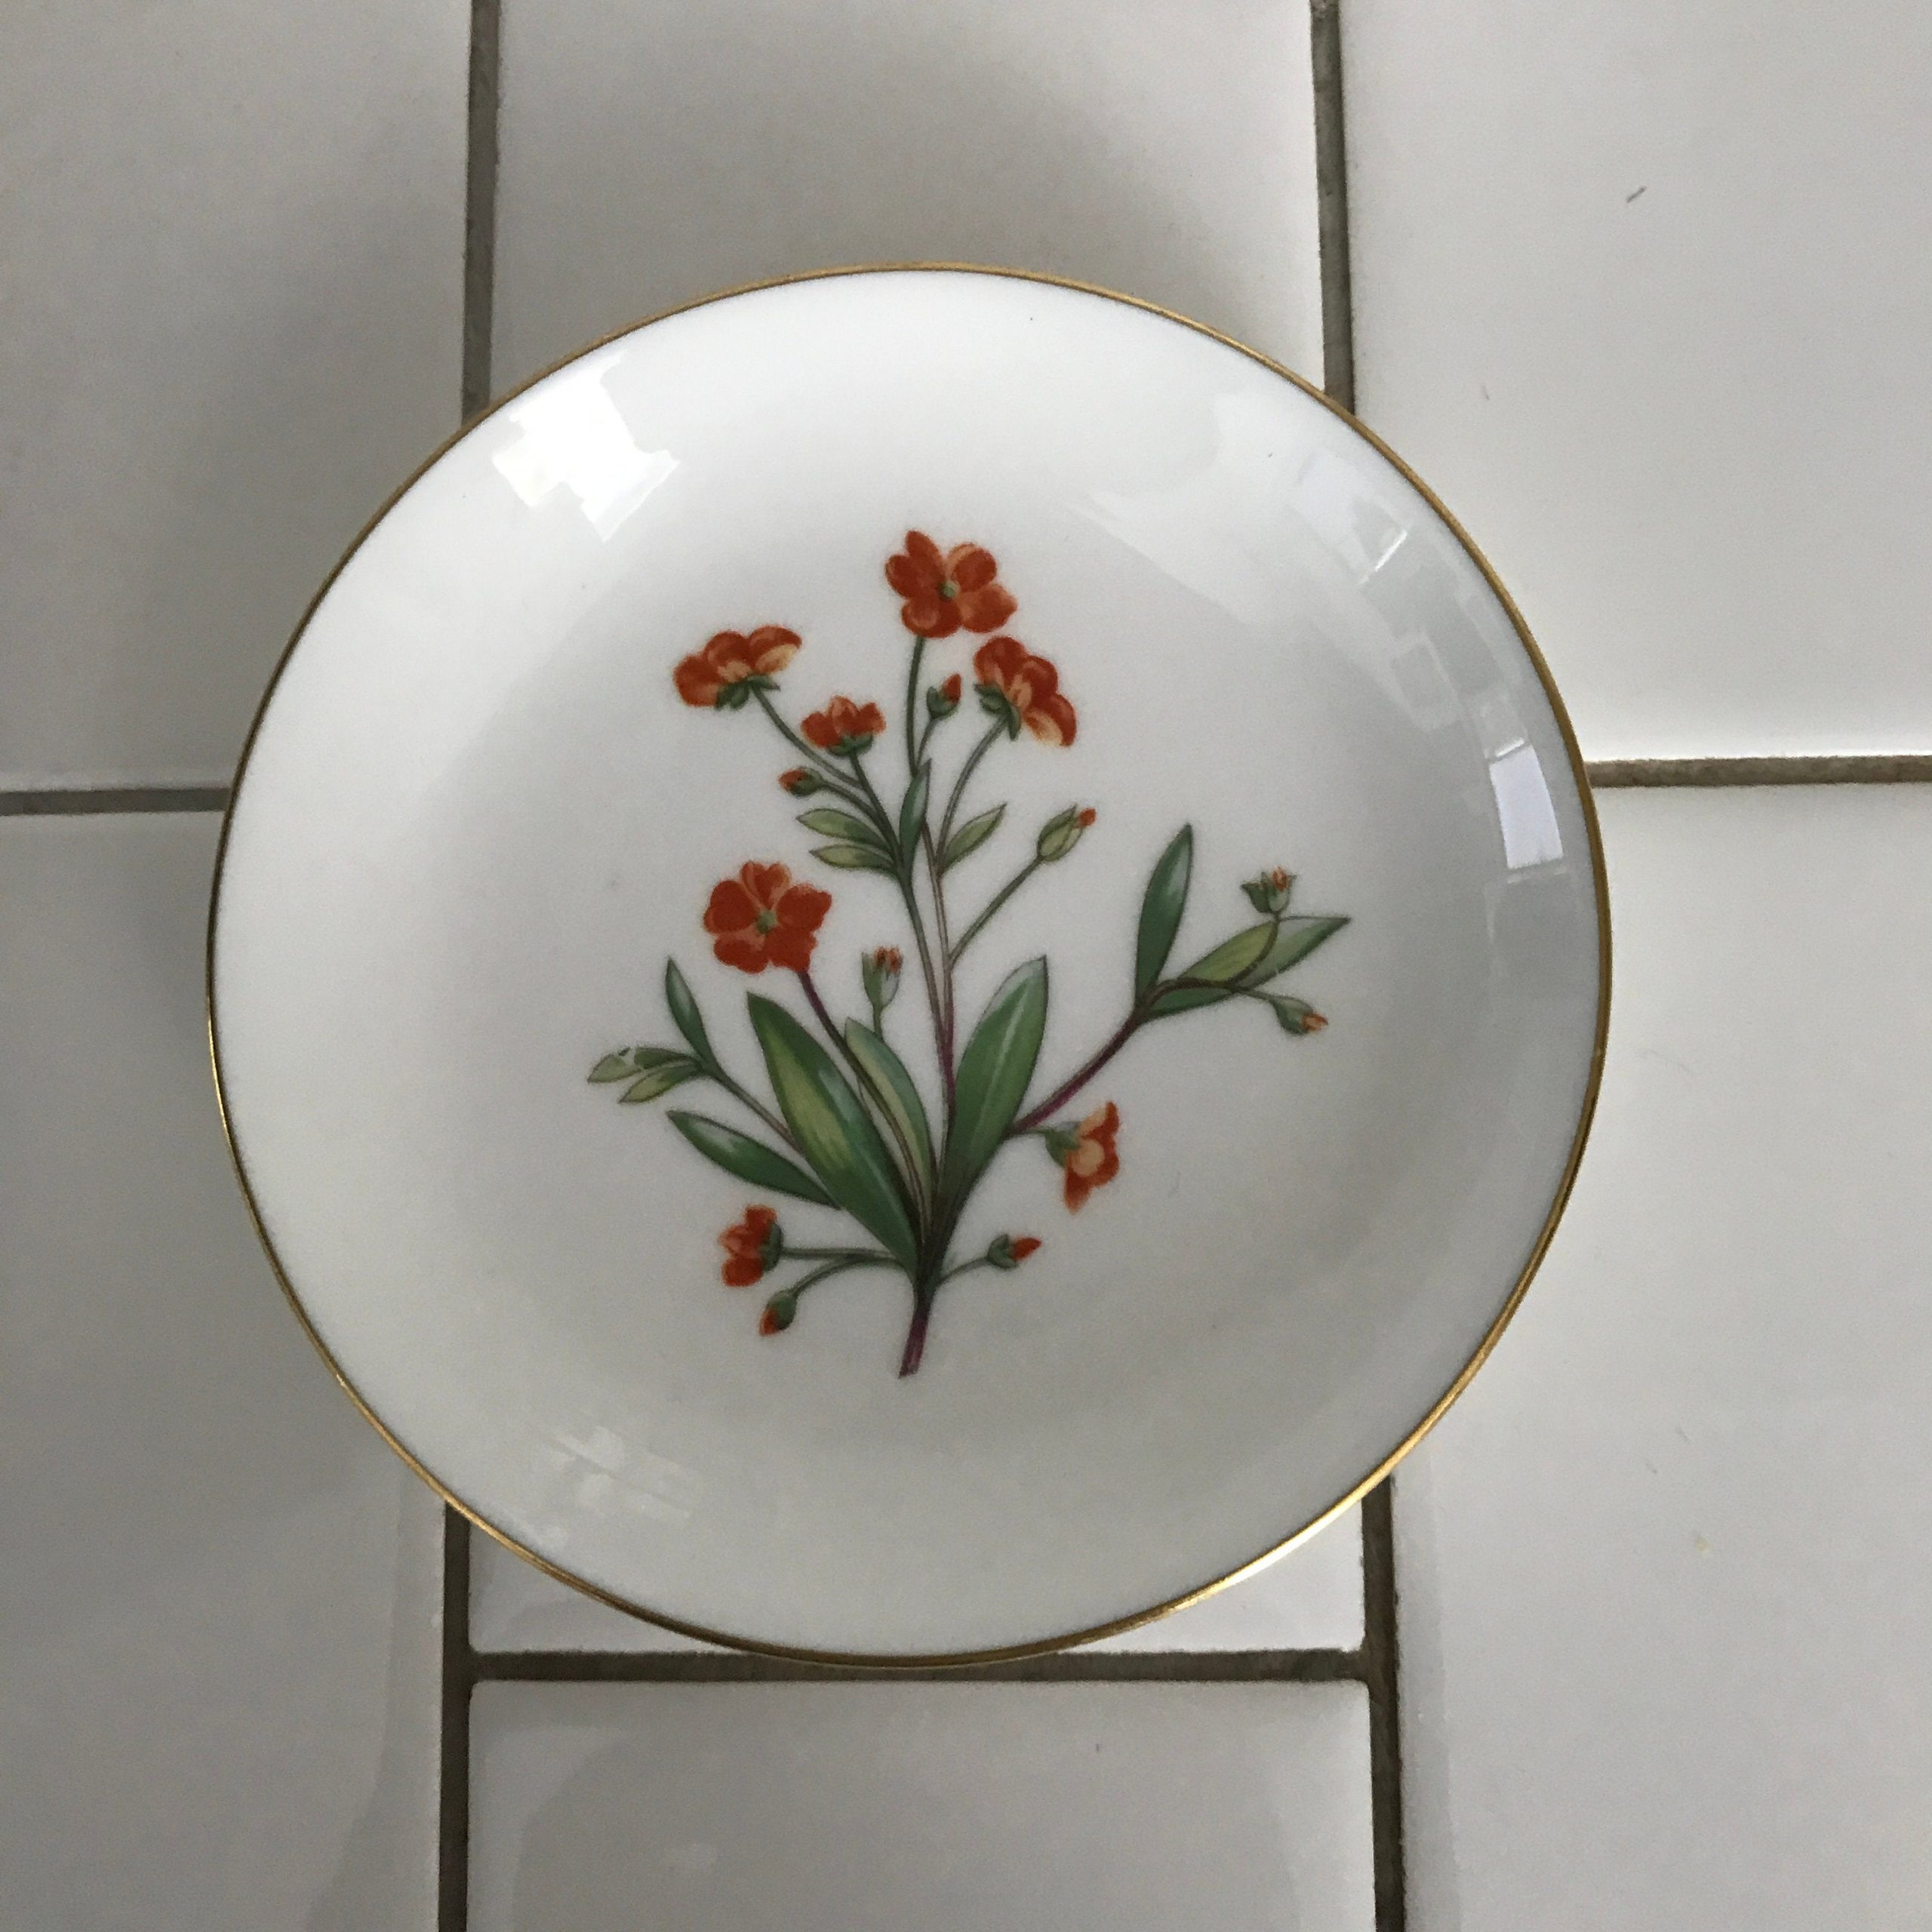 Vintage Miniature Plate Minton England Meadow Pattern Orange And Yellow Flowers Collectible Farmhouse Display Carol S True Vintage And Antiques